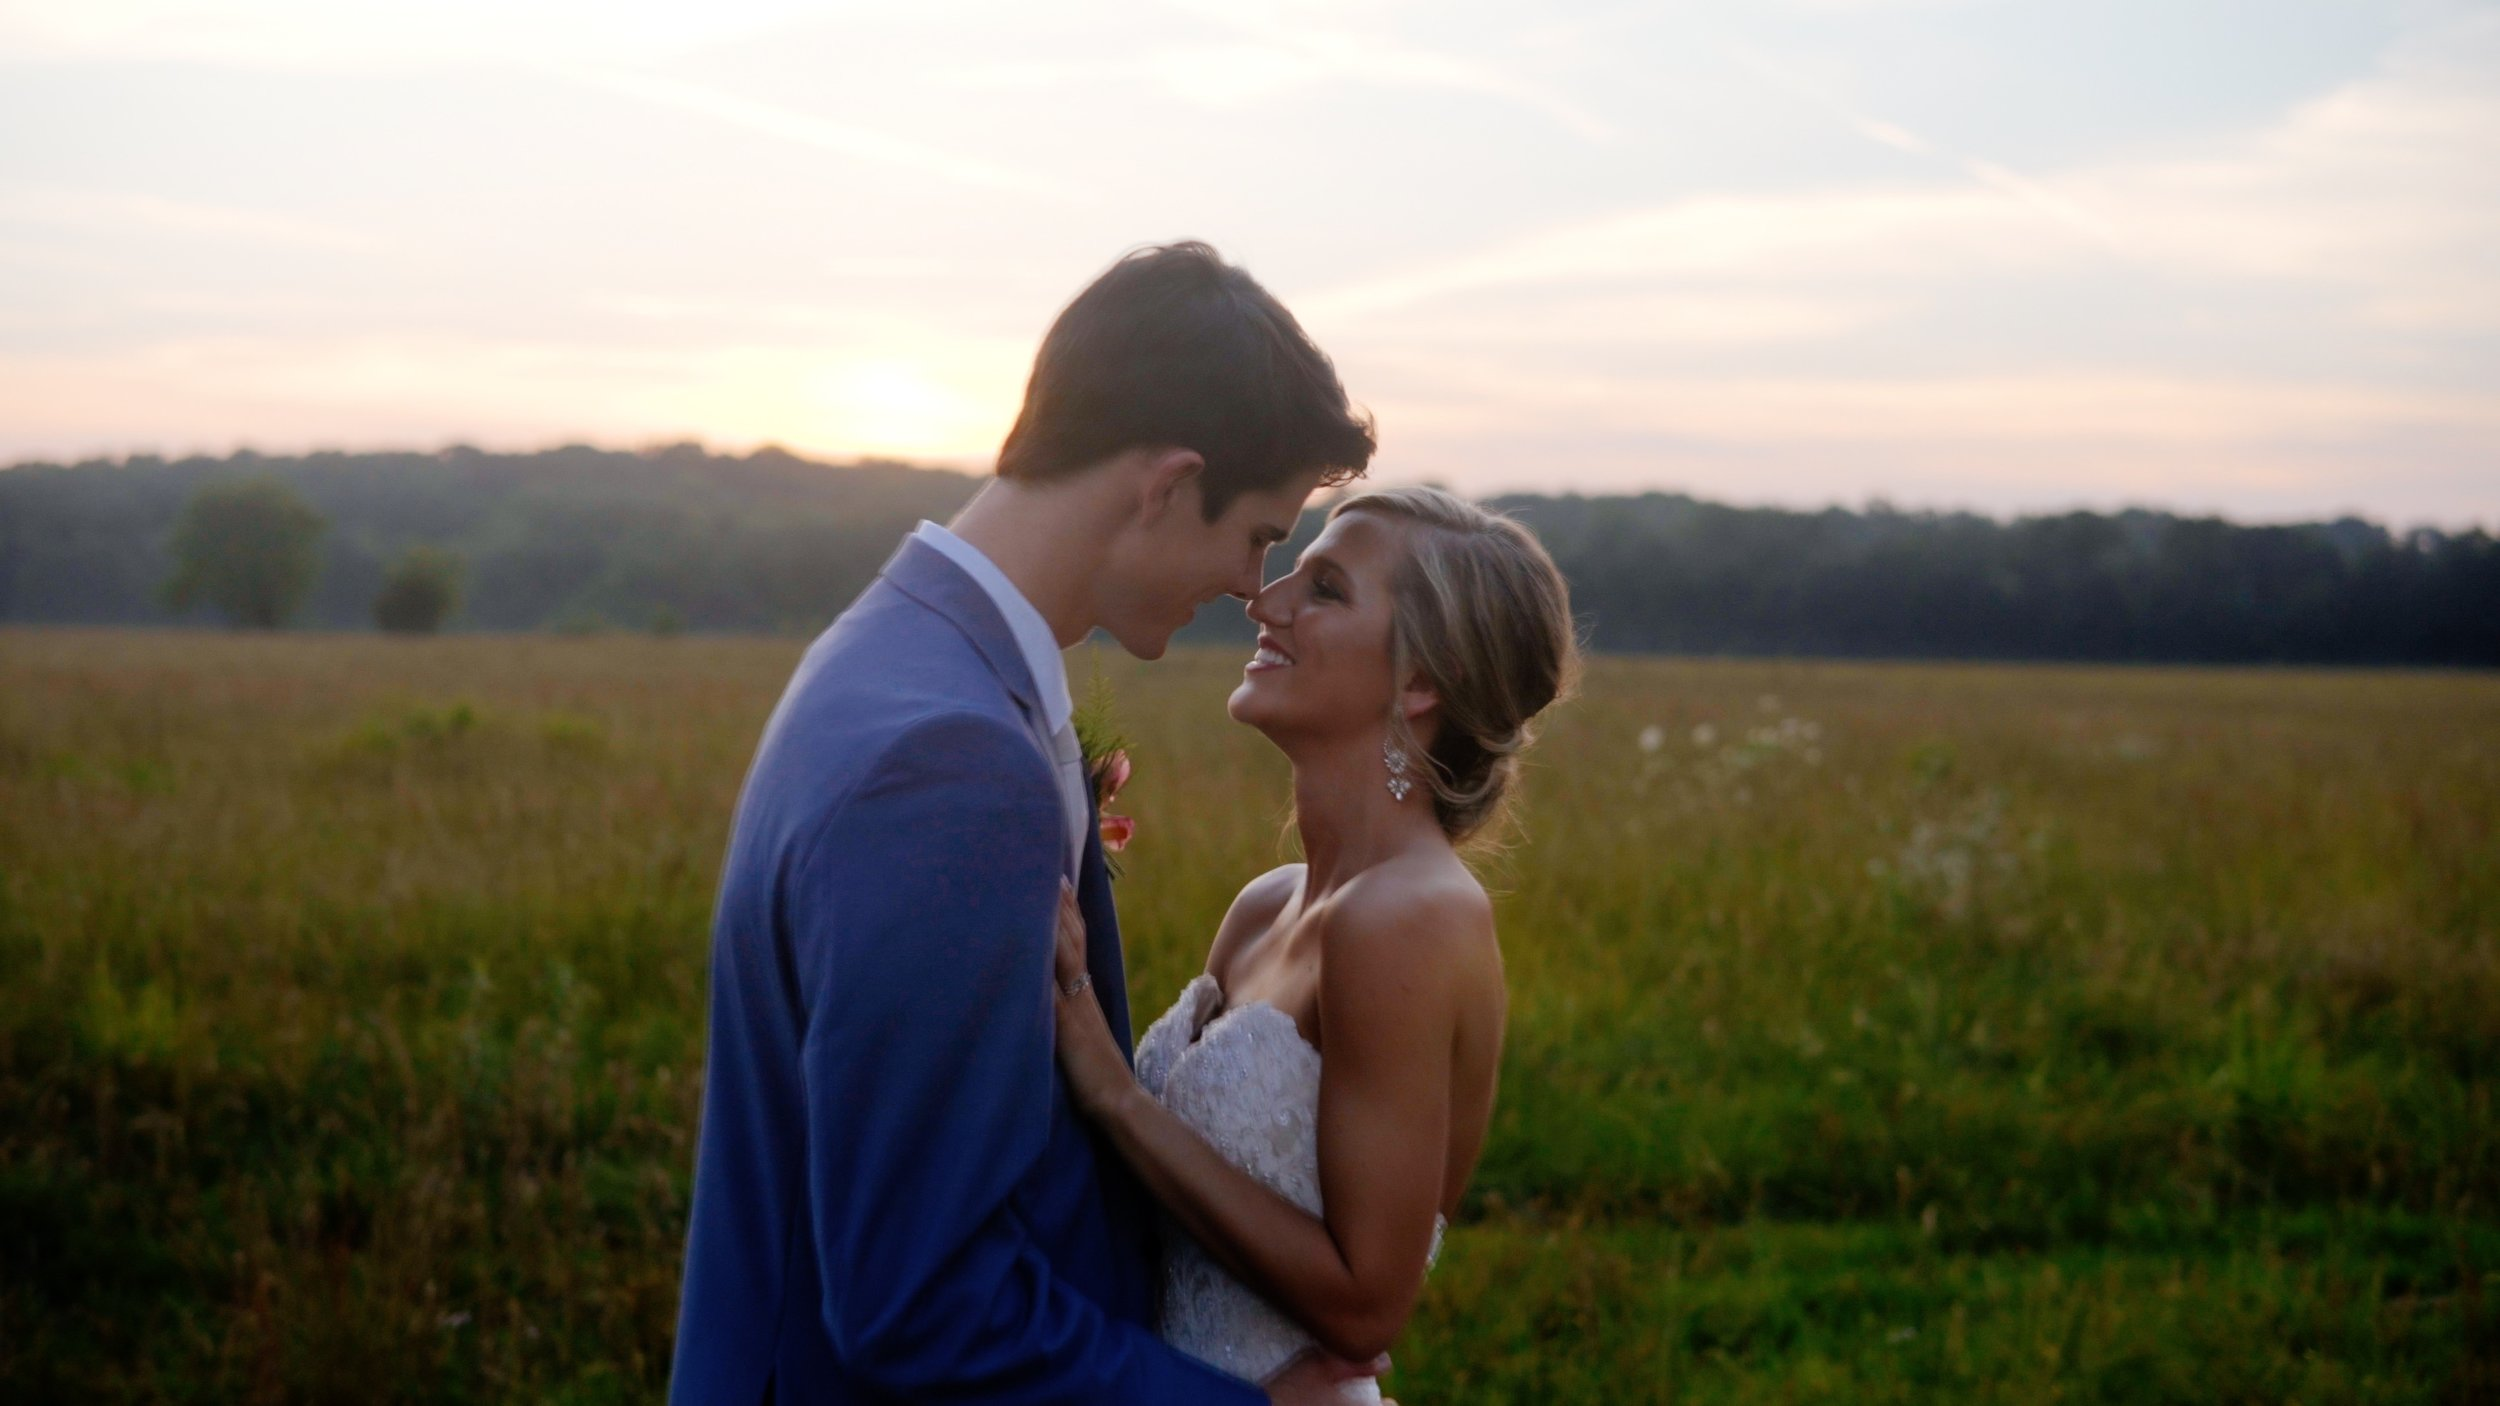 Delaney and Andrew, in a beautiful sunset shot, my goodness..